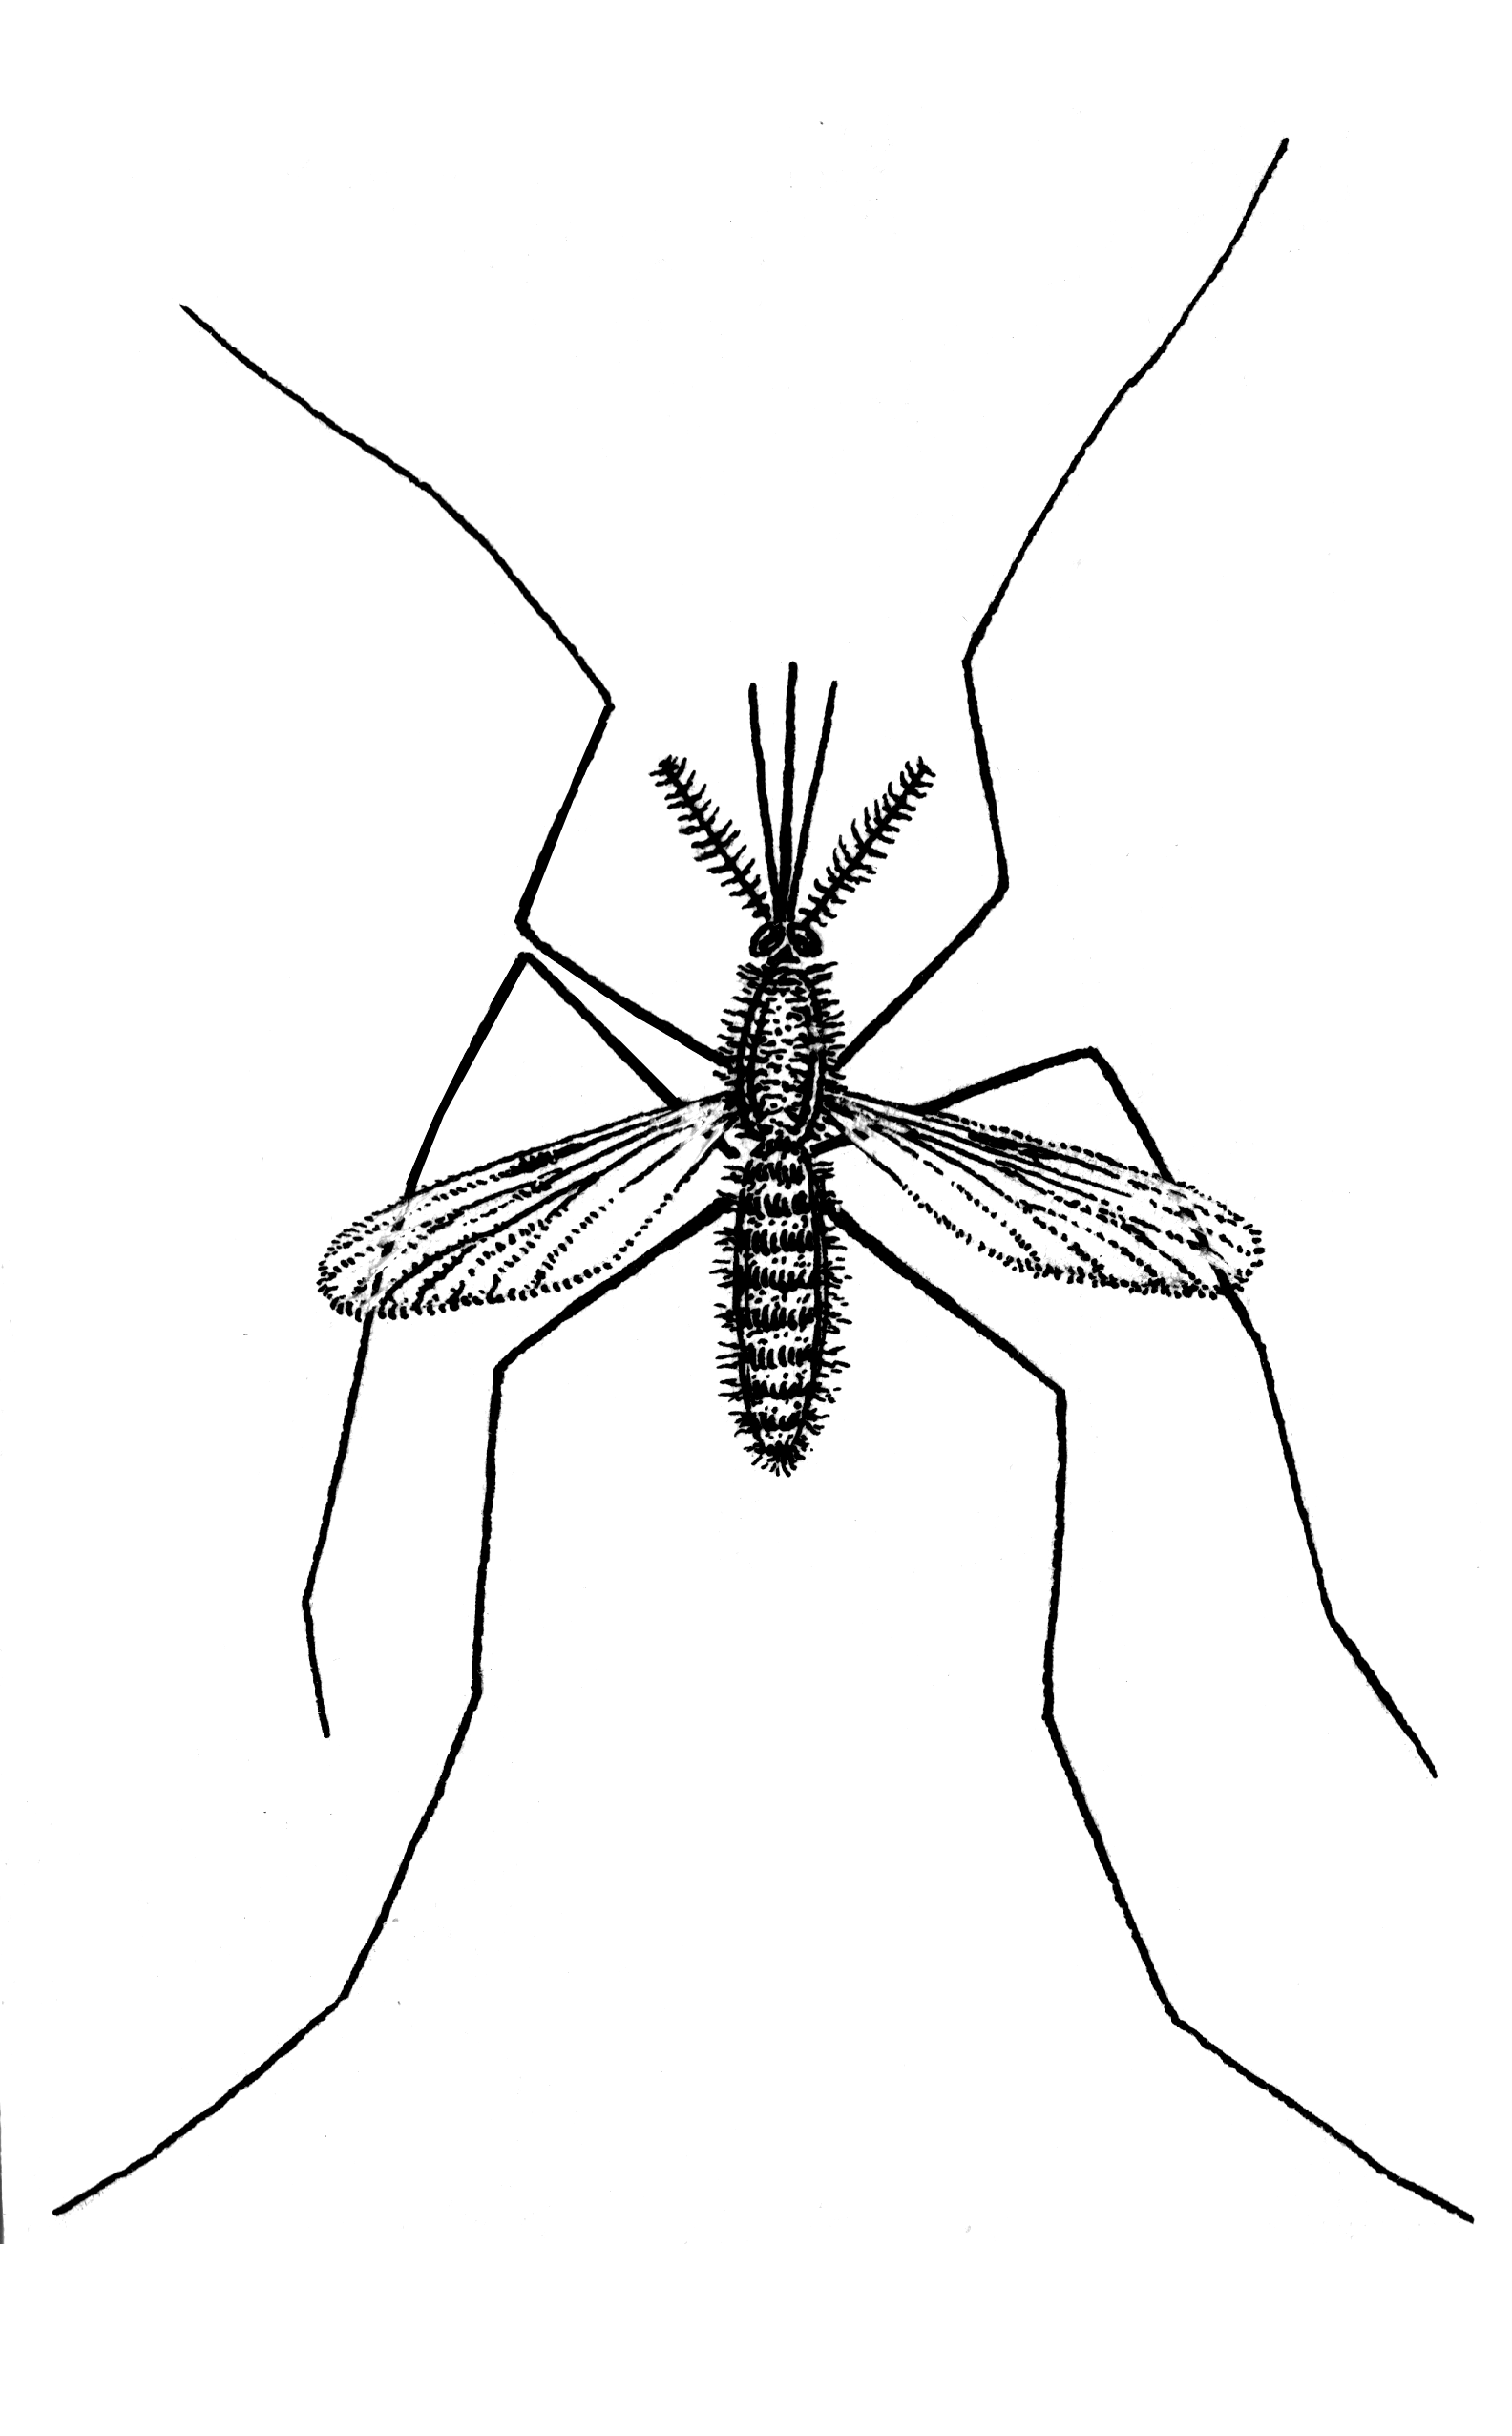 Anopheles mosquito drawing - photo#9